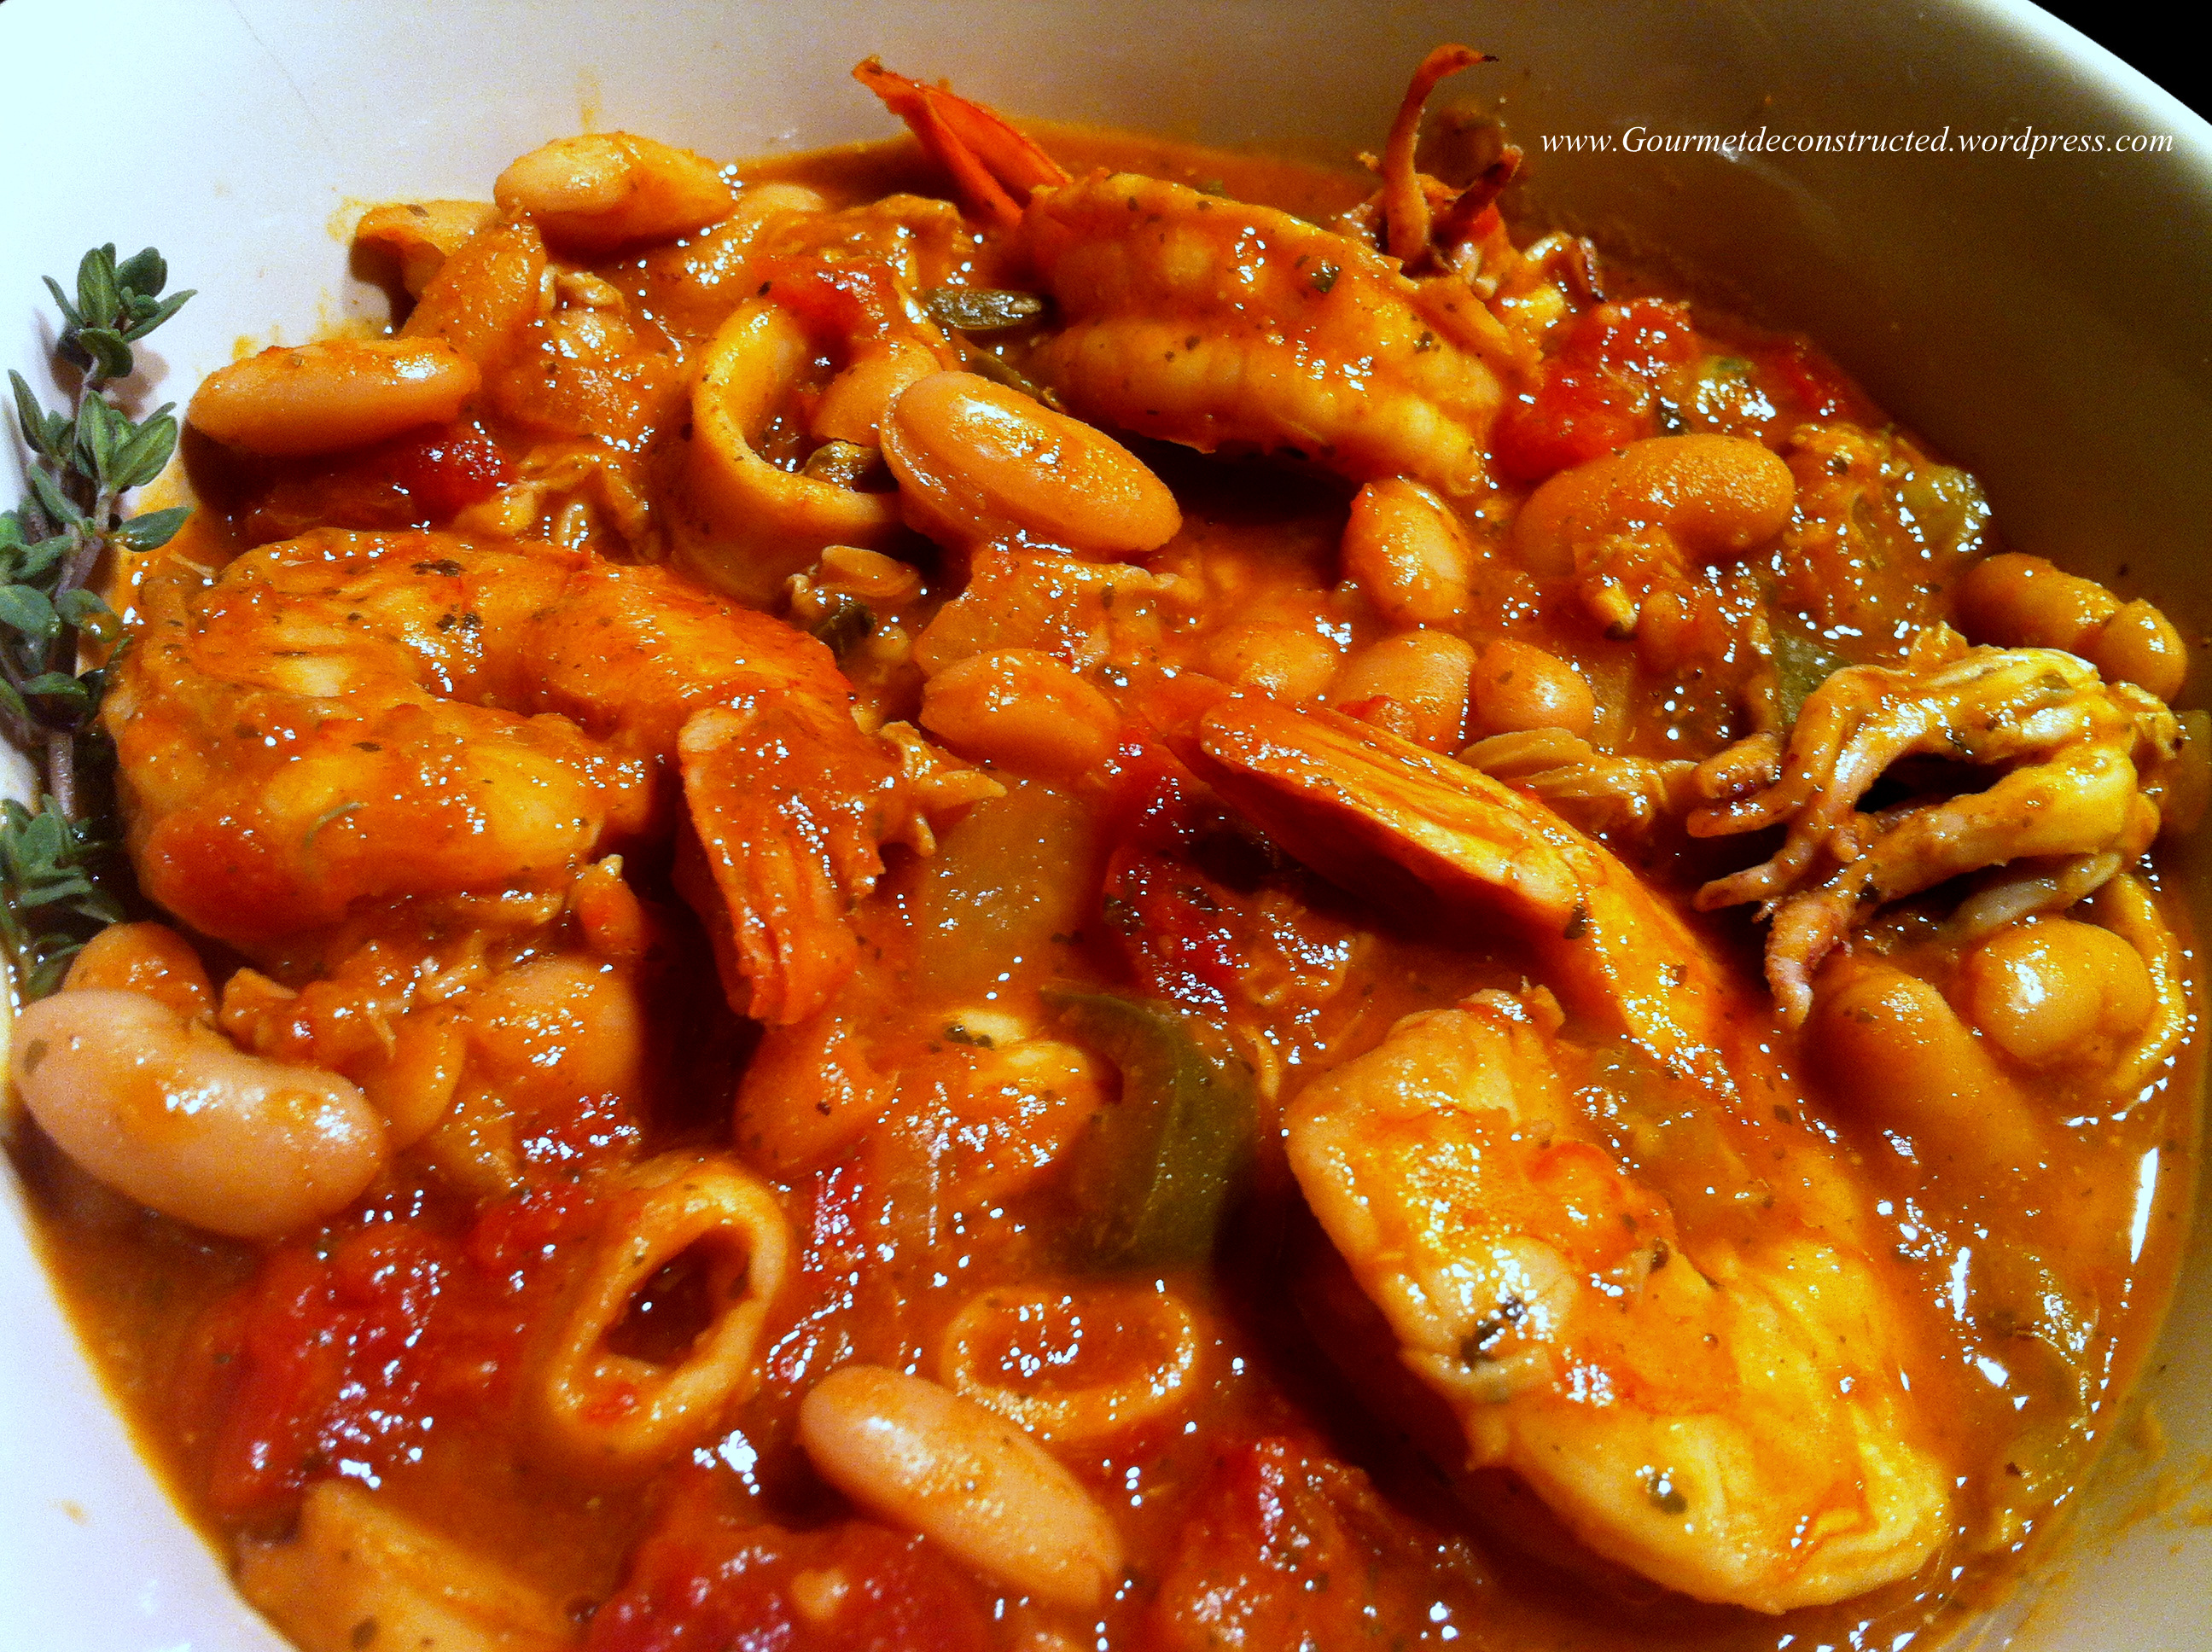 Seafood, White bean, and Vegetable Chili